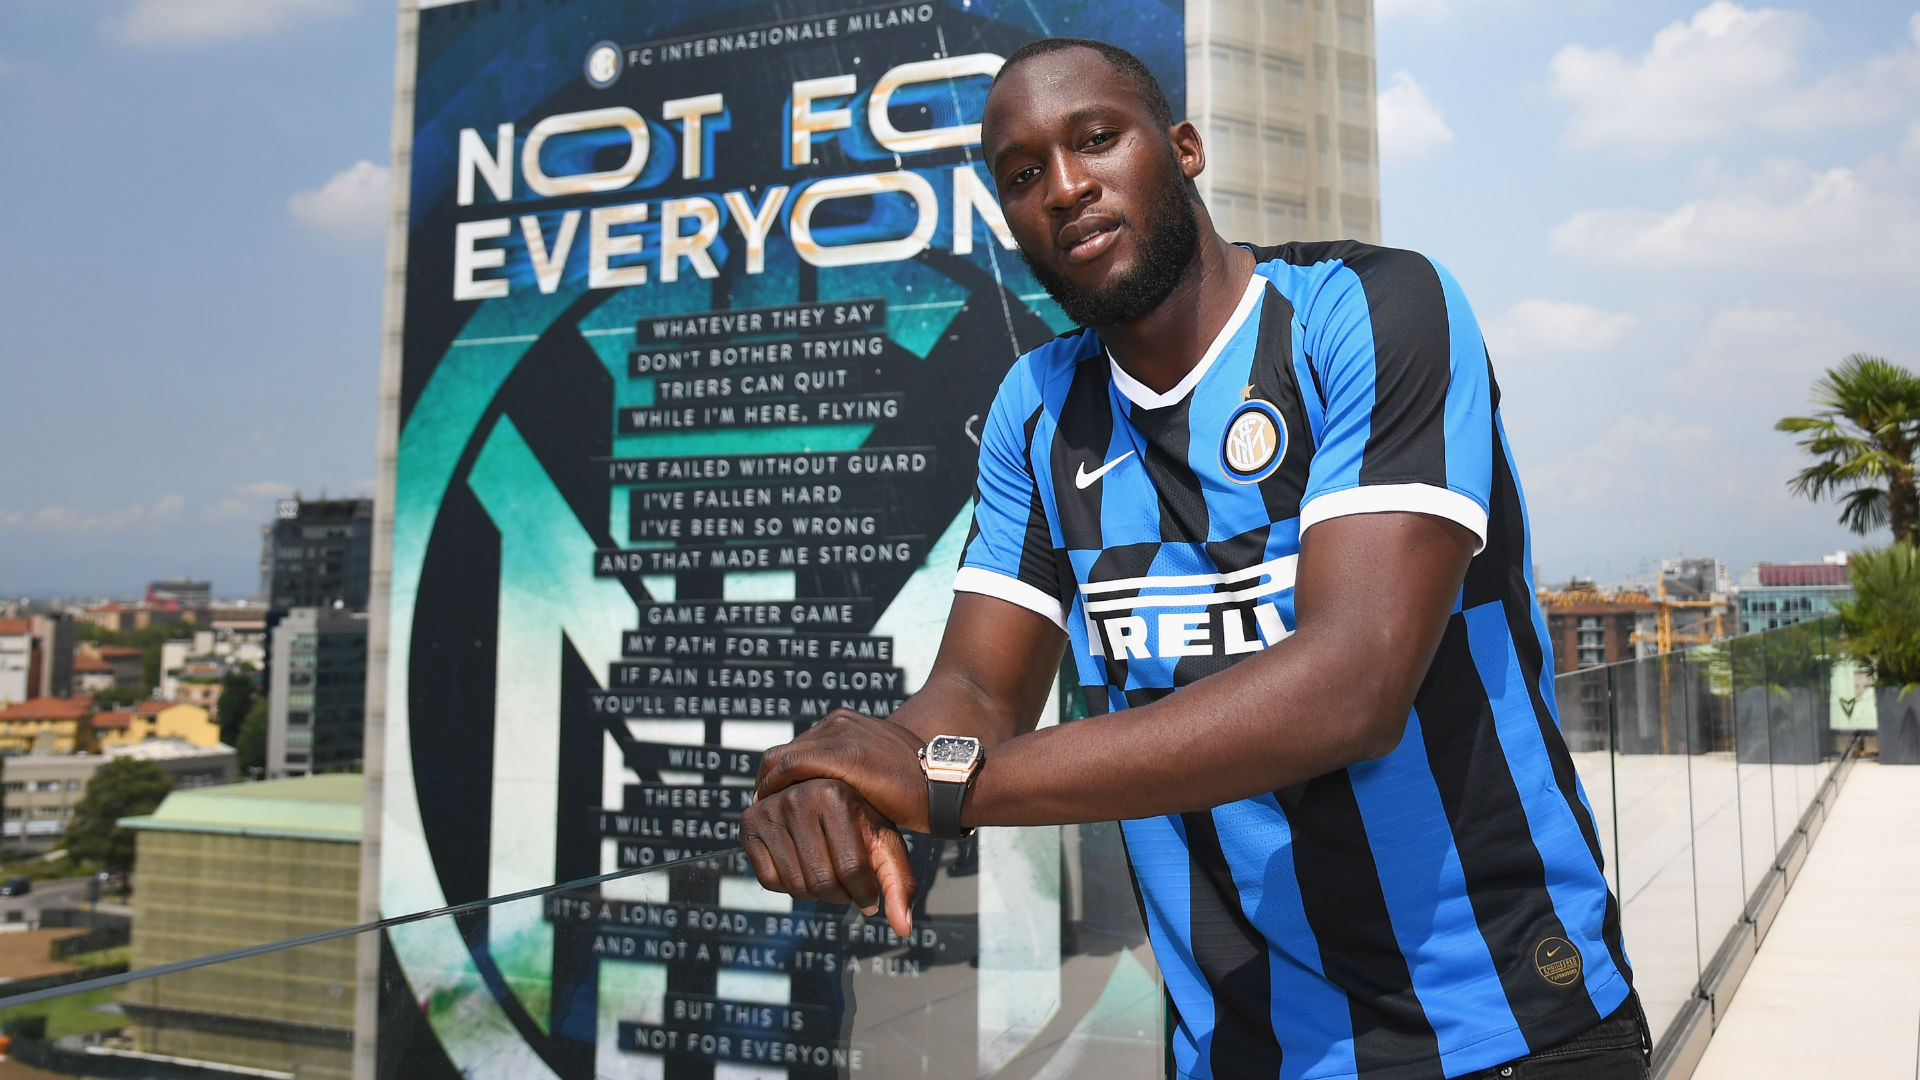 Inter is different than England, it's real work - Lukaku aims dig at Premier League